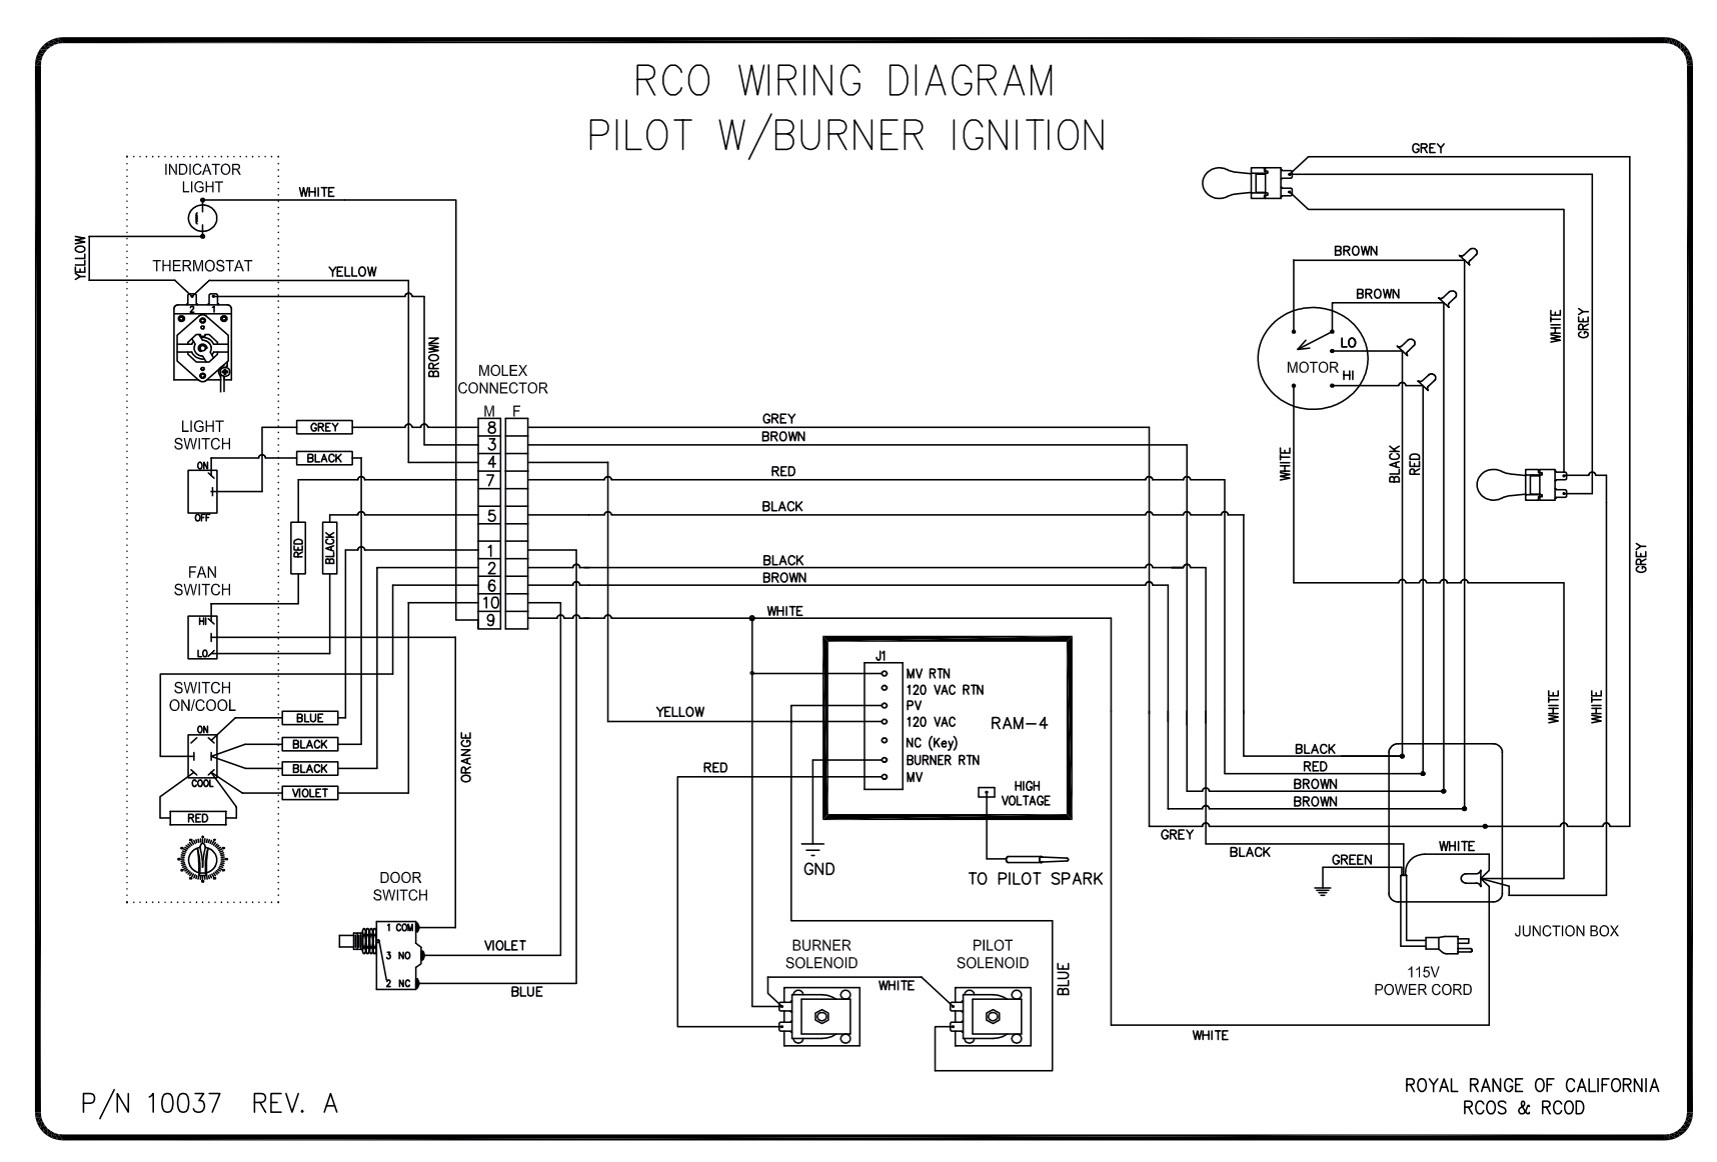 Gas Oven Wiring Diagram - Wiring Diagrams Load Gas Oven Thermostat Wiring Diagram on